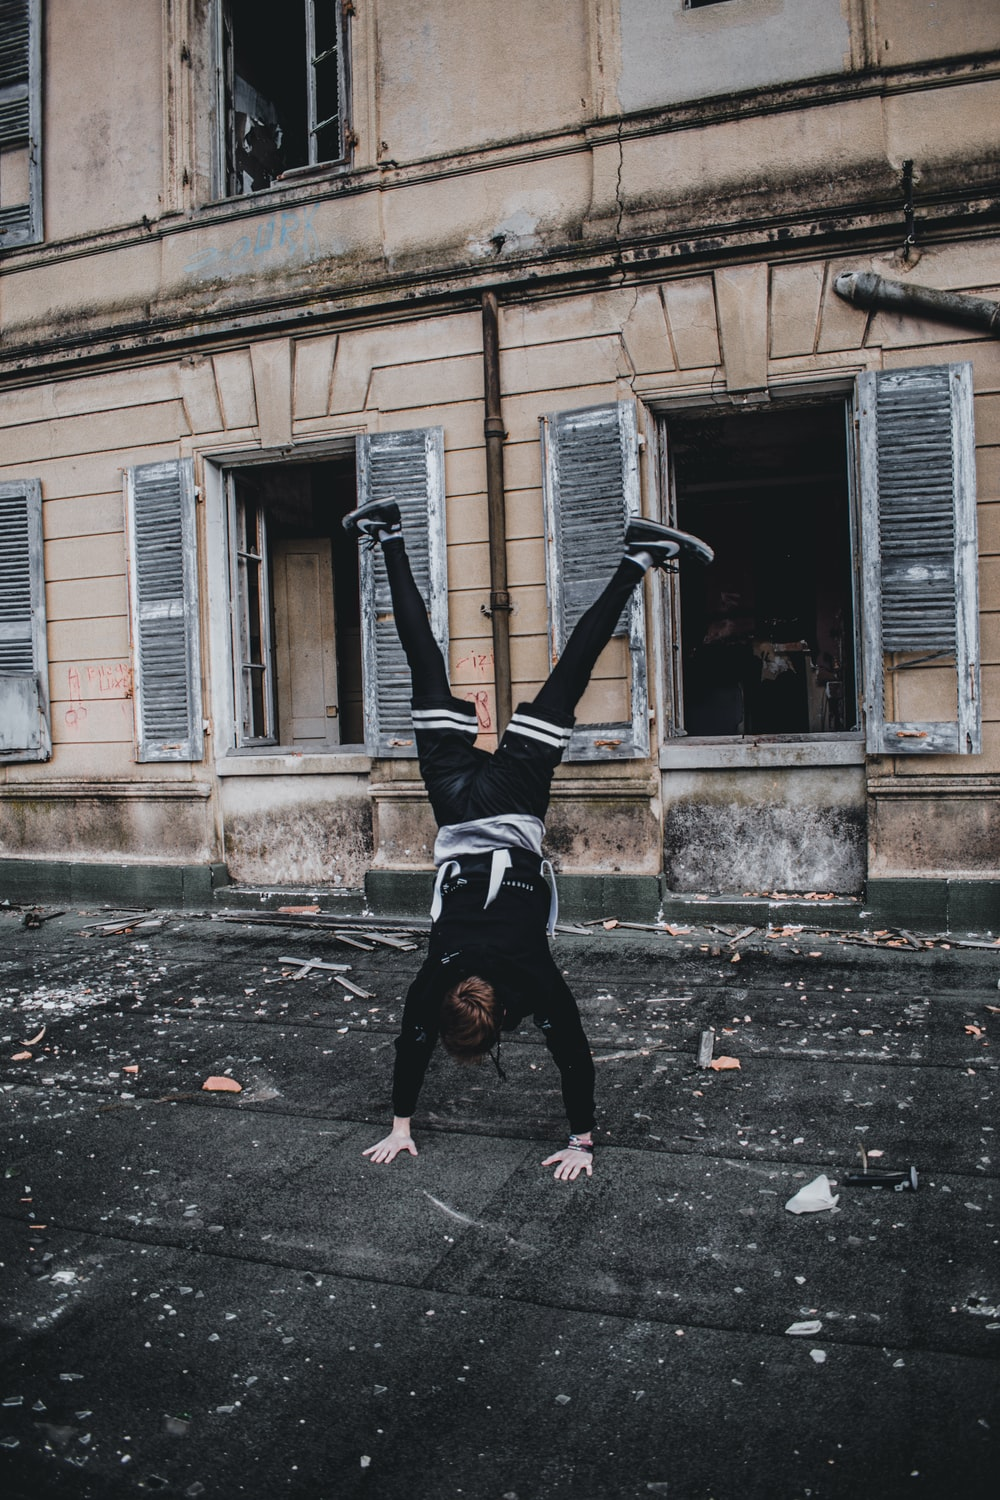 man doing hand stand on street near building during daytime